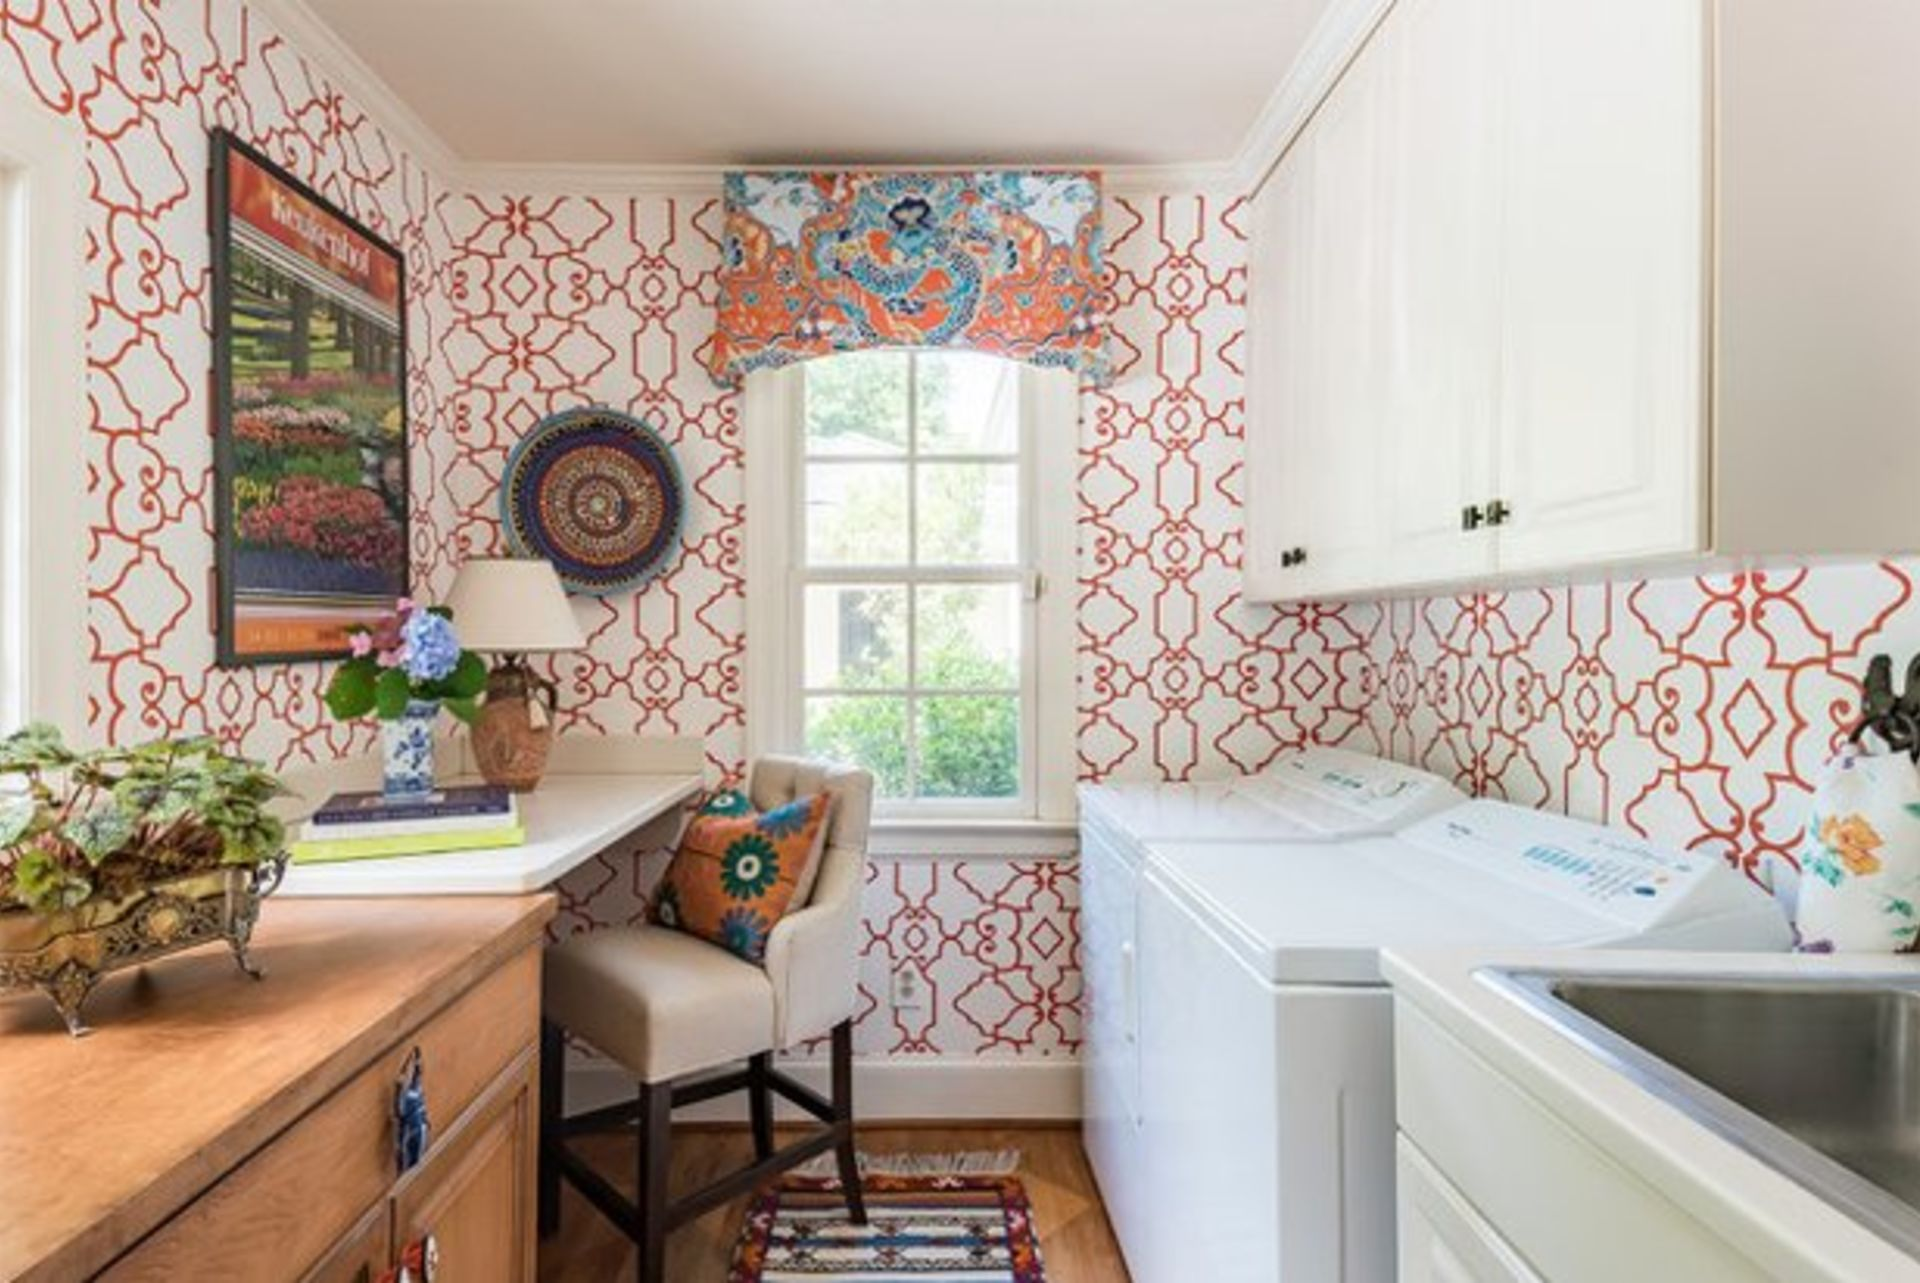 This Laundry Room Works Hard & Has Fun Too